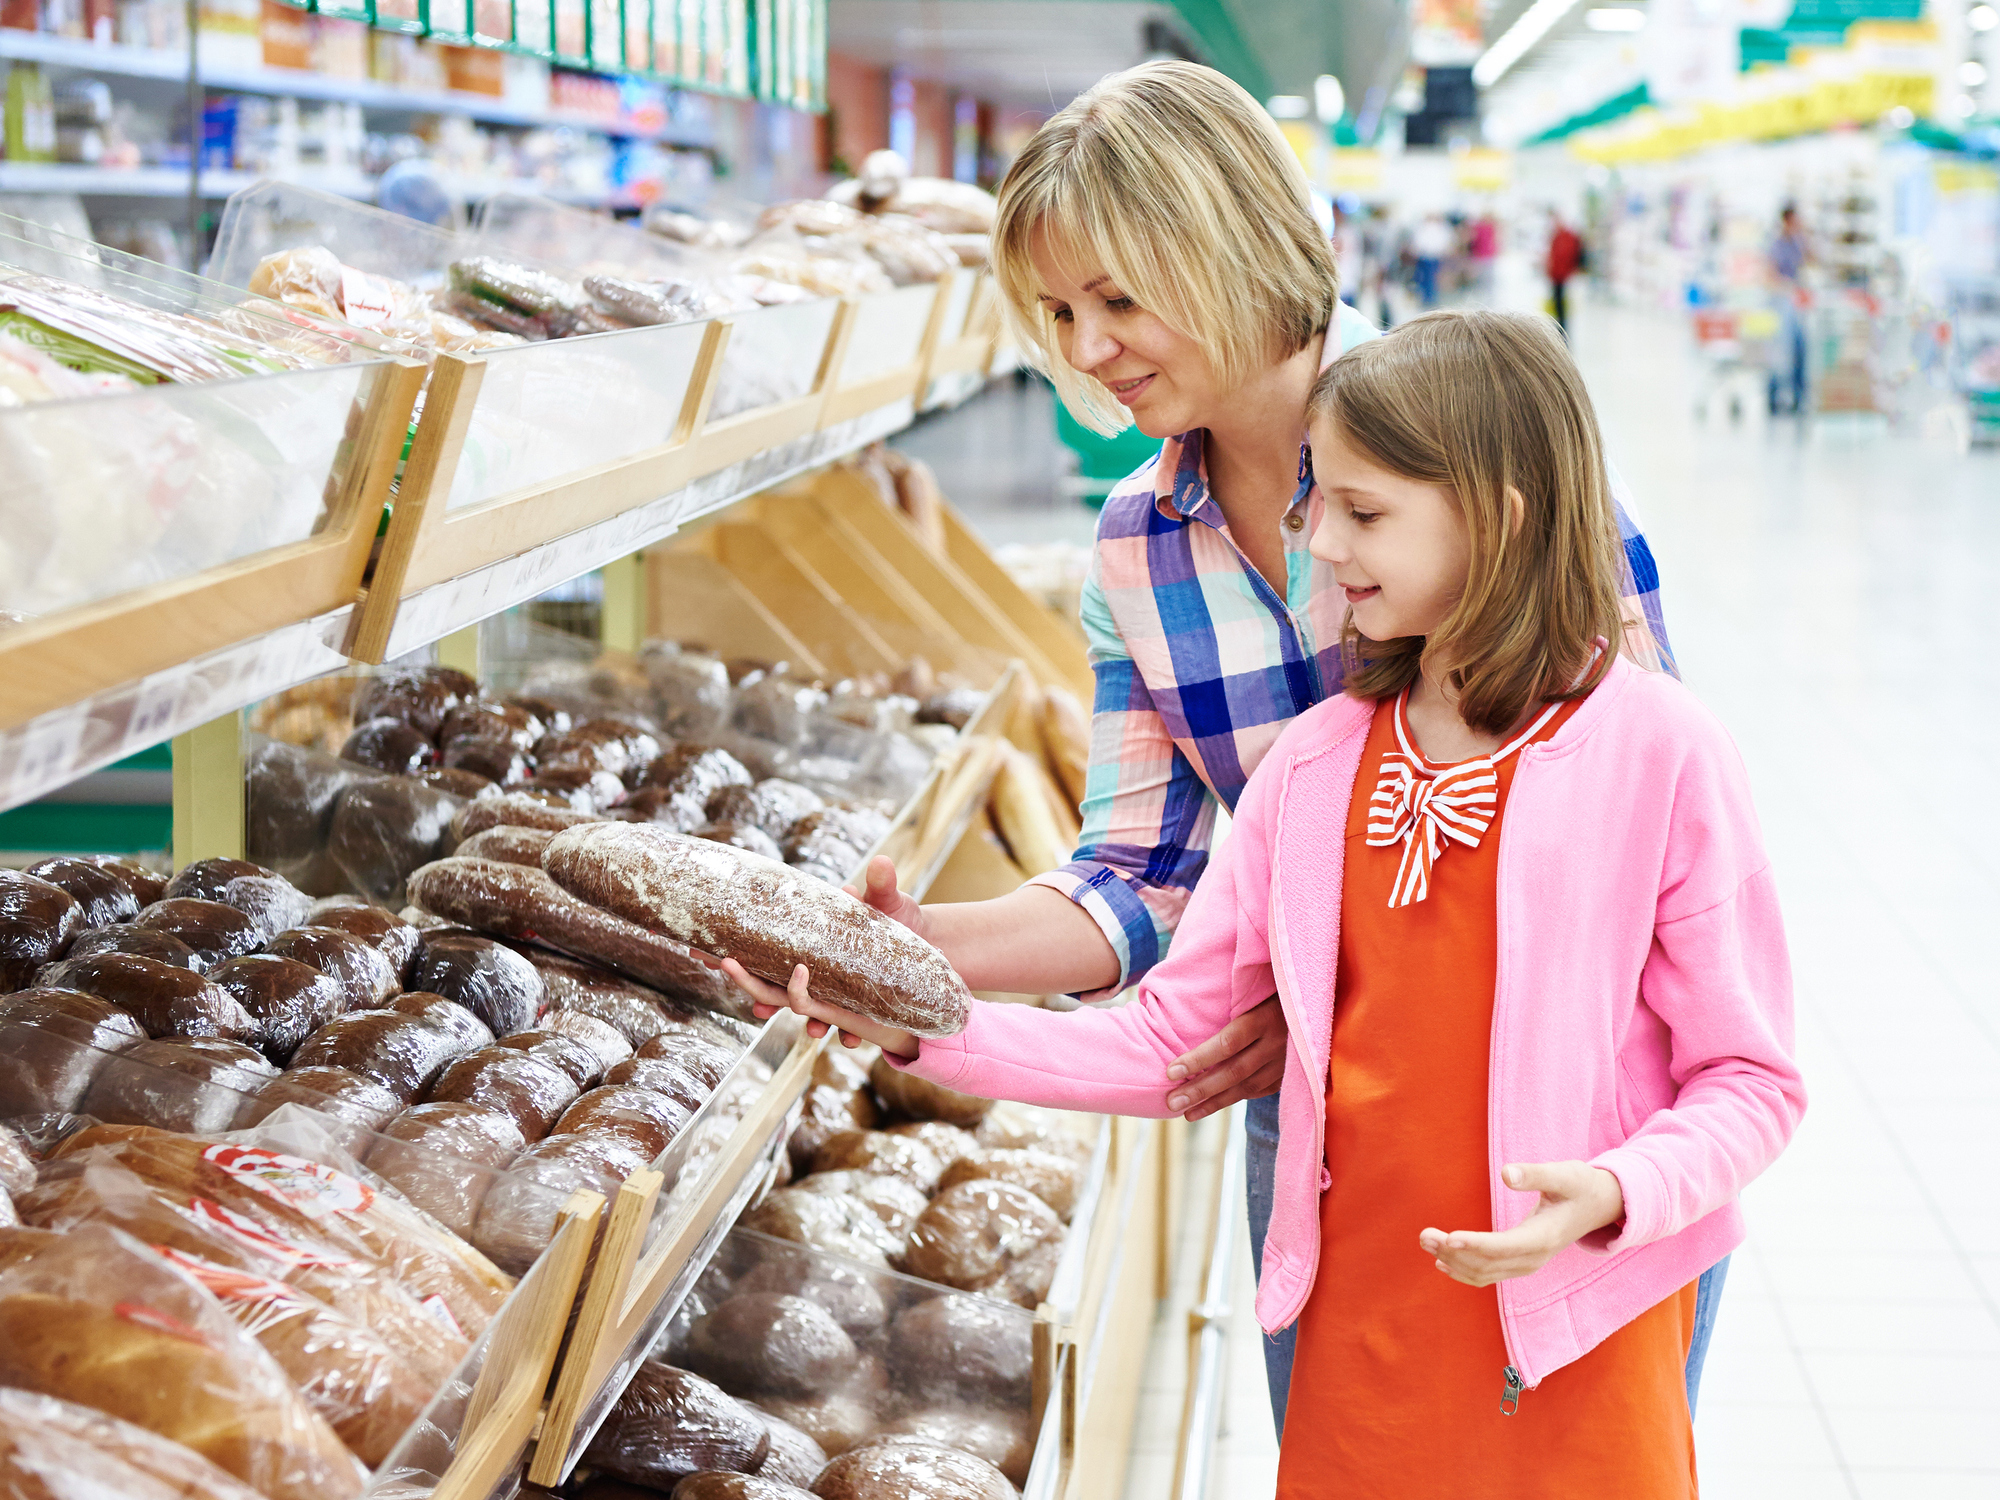 Child and parent choosing whole grain bread at grocery store